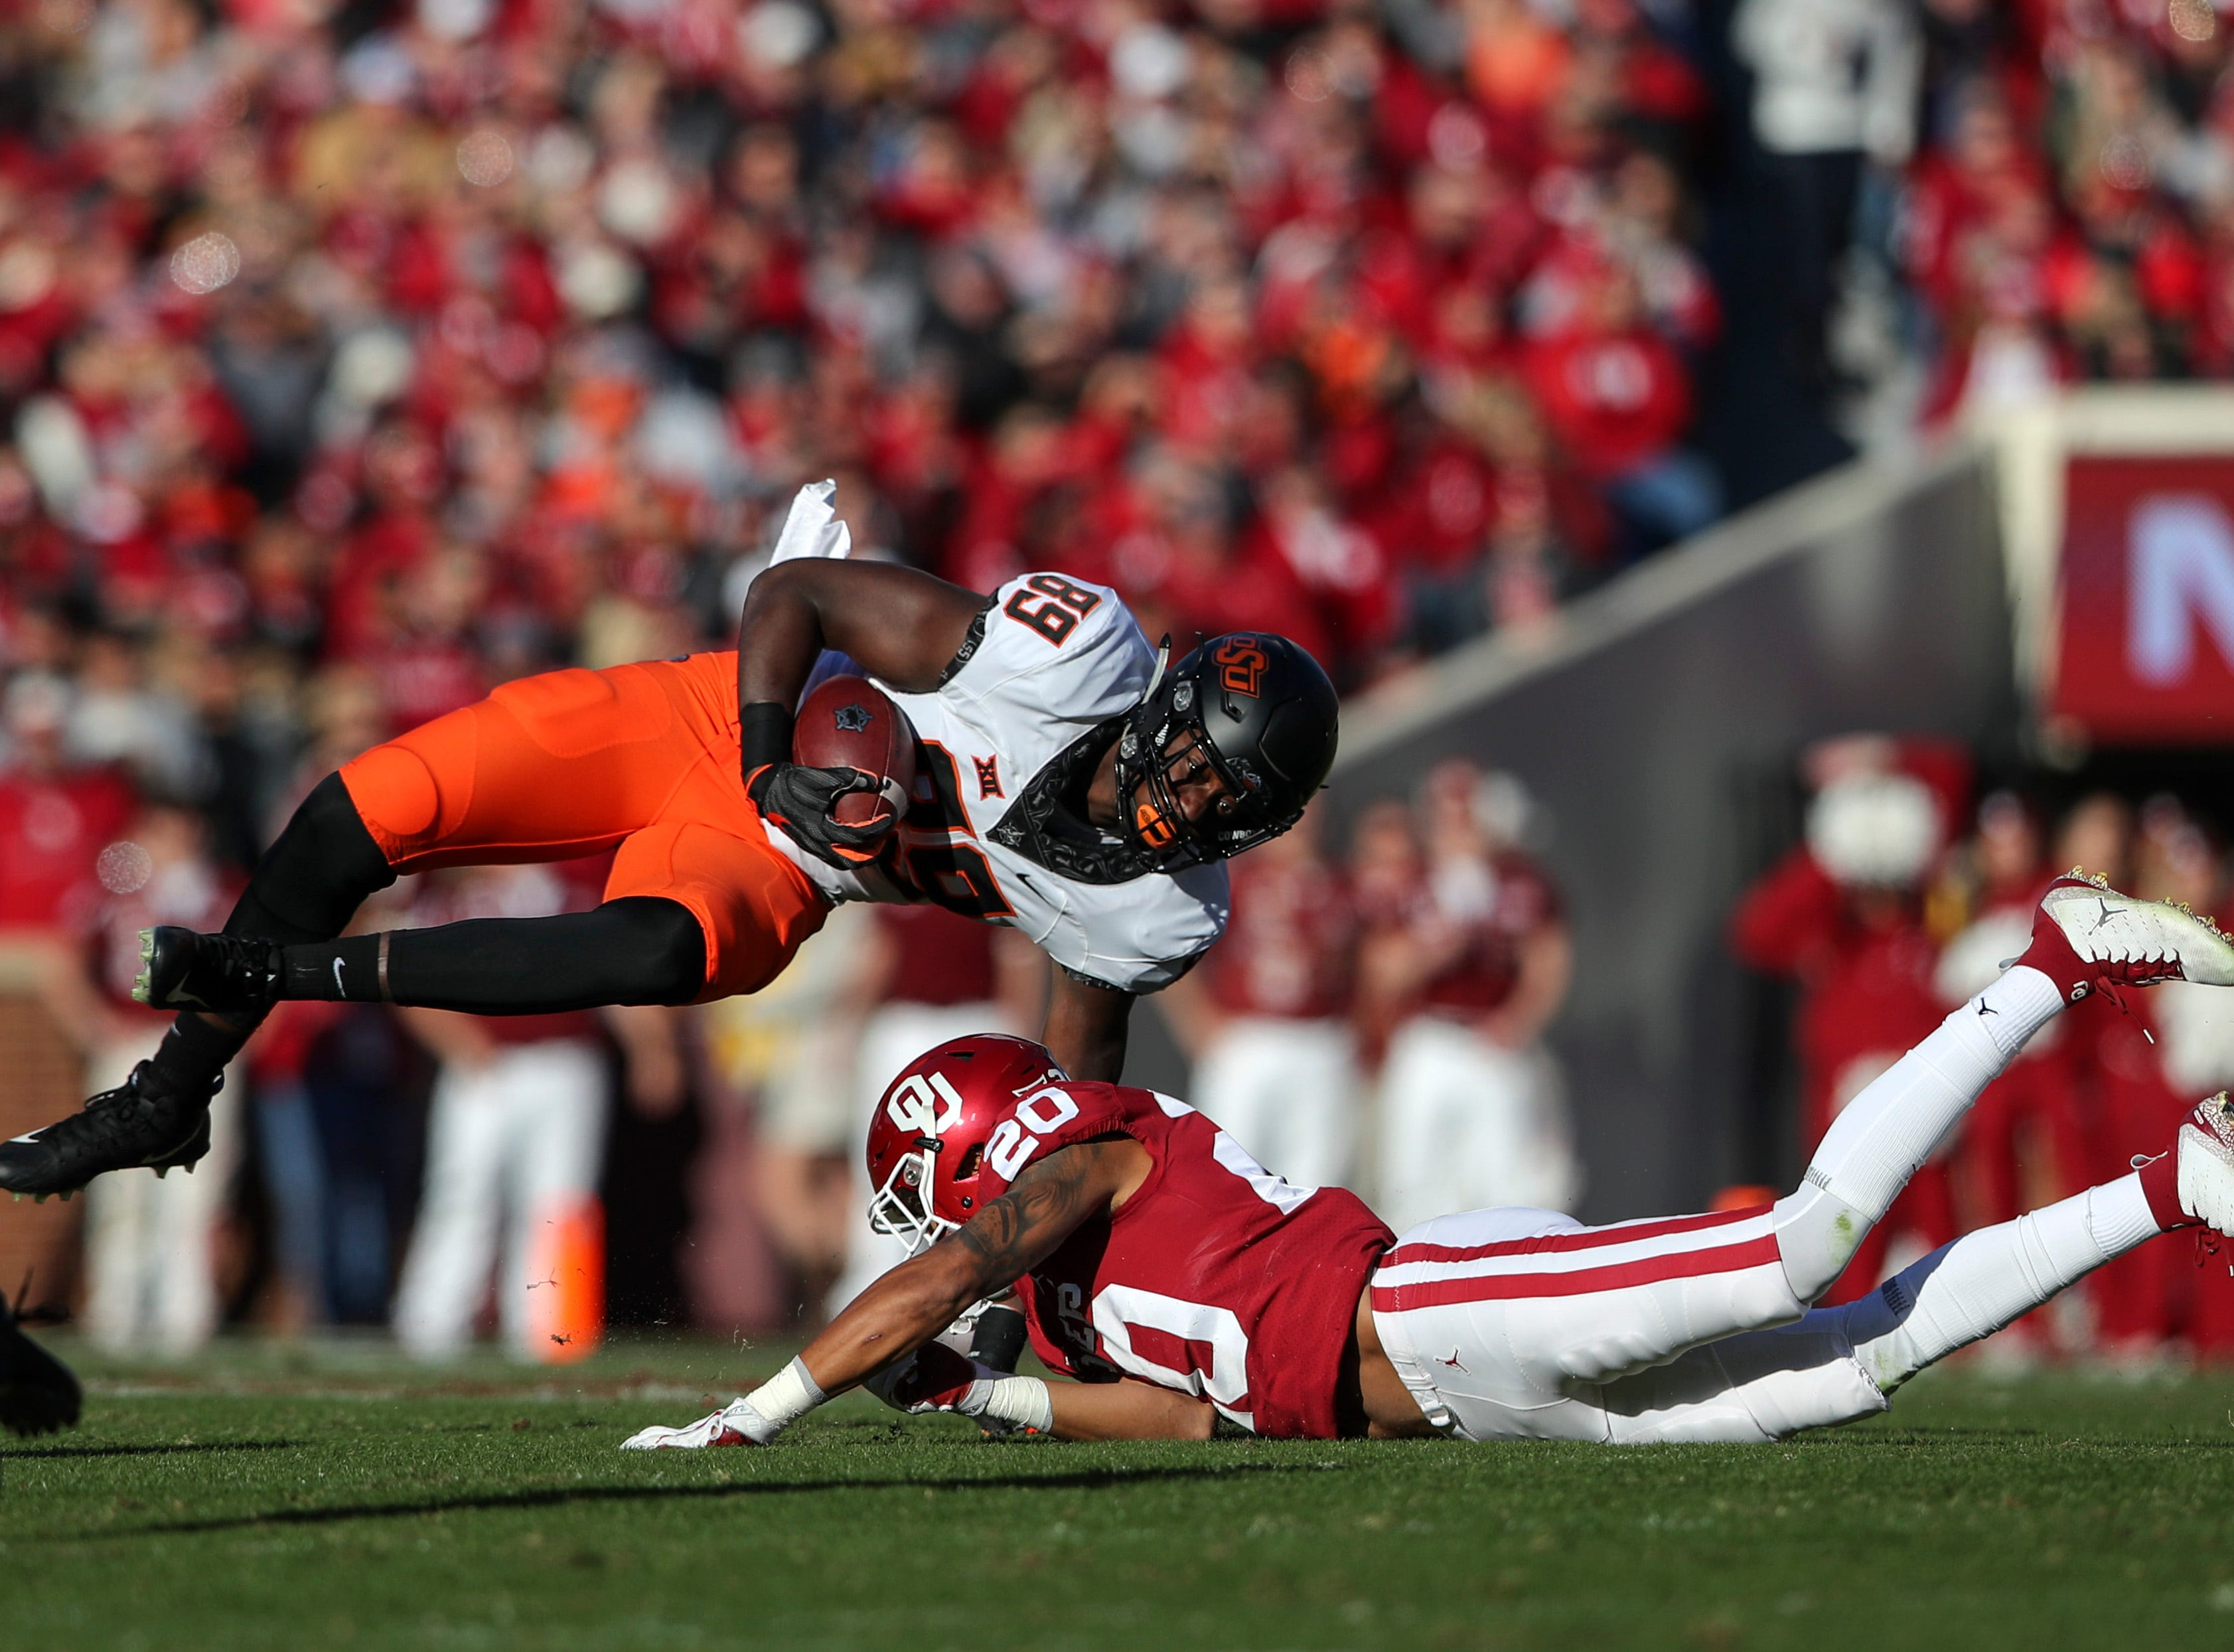 Oklahoma Sooners safety Robert Barnes (20) tackles Oklahoma State Cowboys wide receiver Jelani Woods (89) during the first half at Gaylord Family-Oklahoma Memorial Stadium.